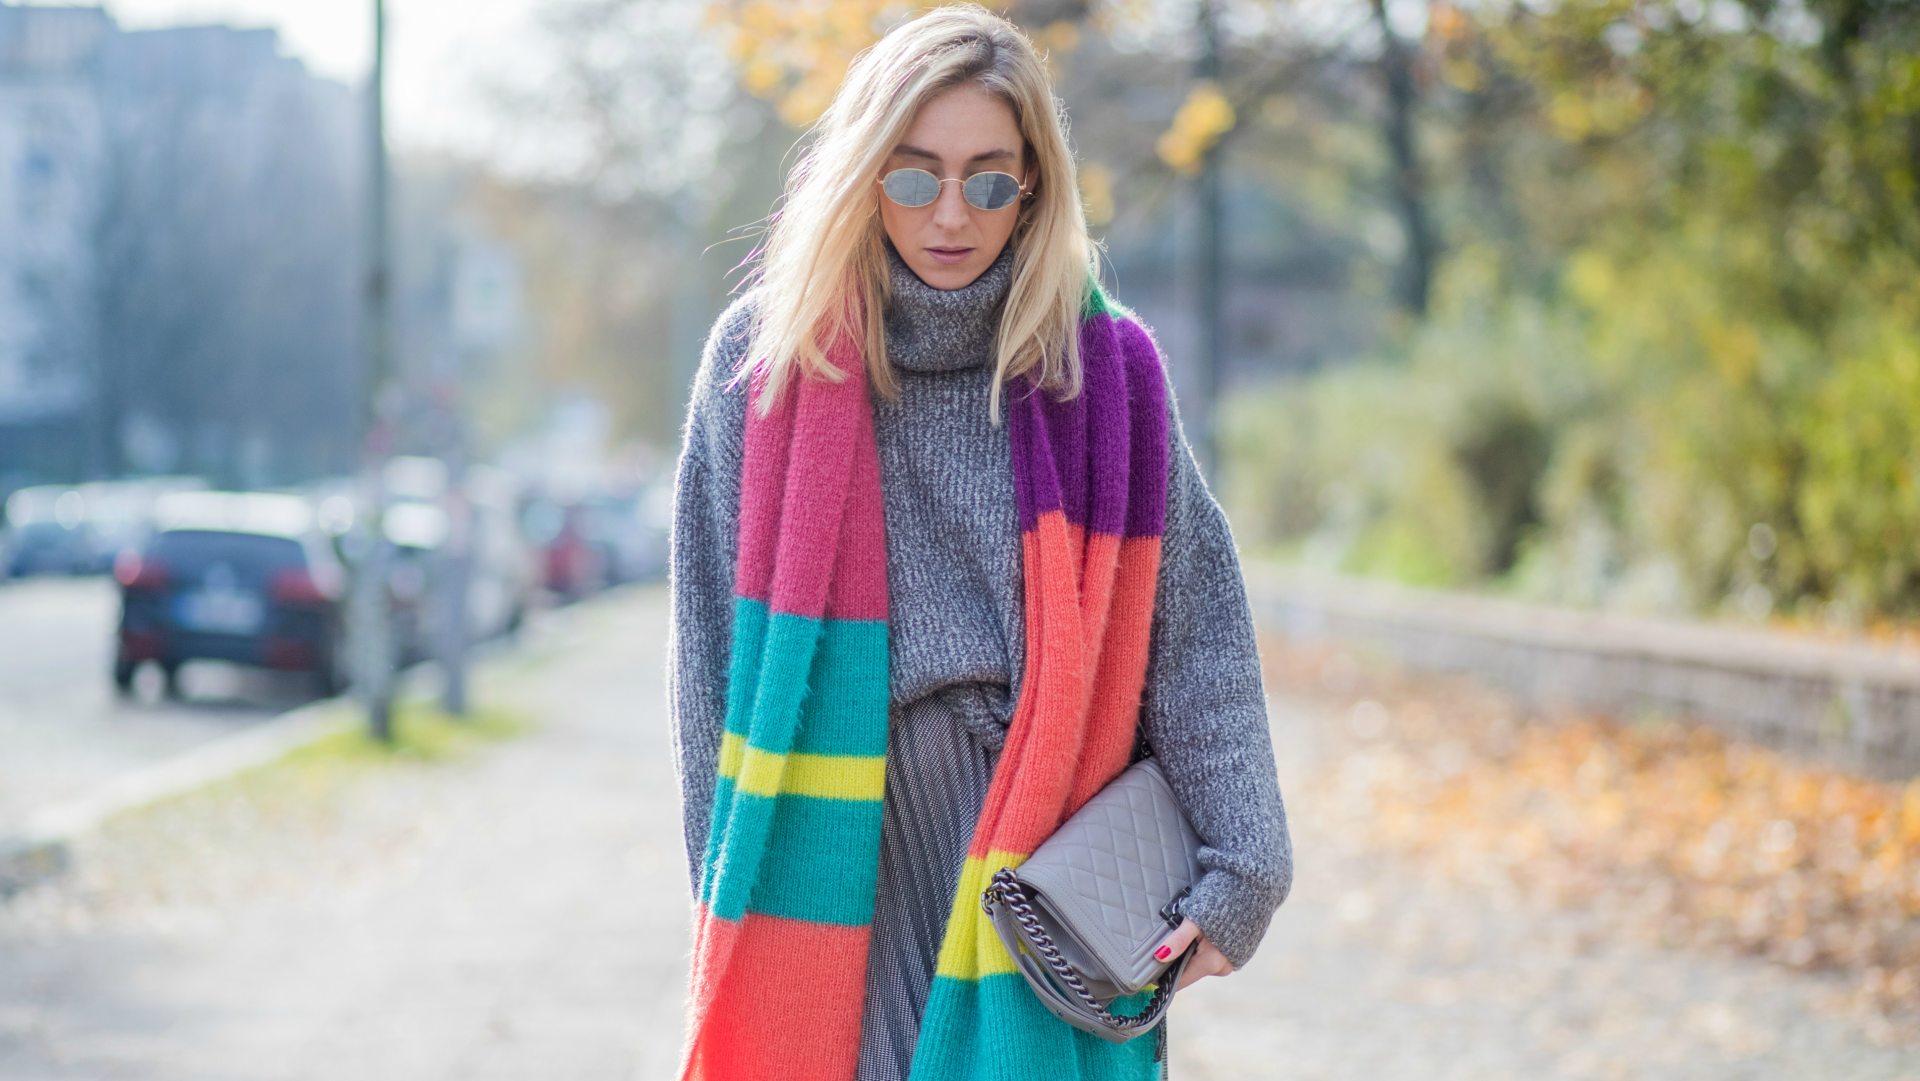 30 Thanksgiving Day Outfits That Are Comfy (Yet Stylish)